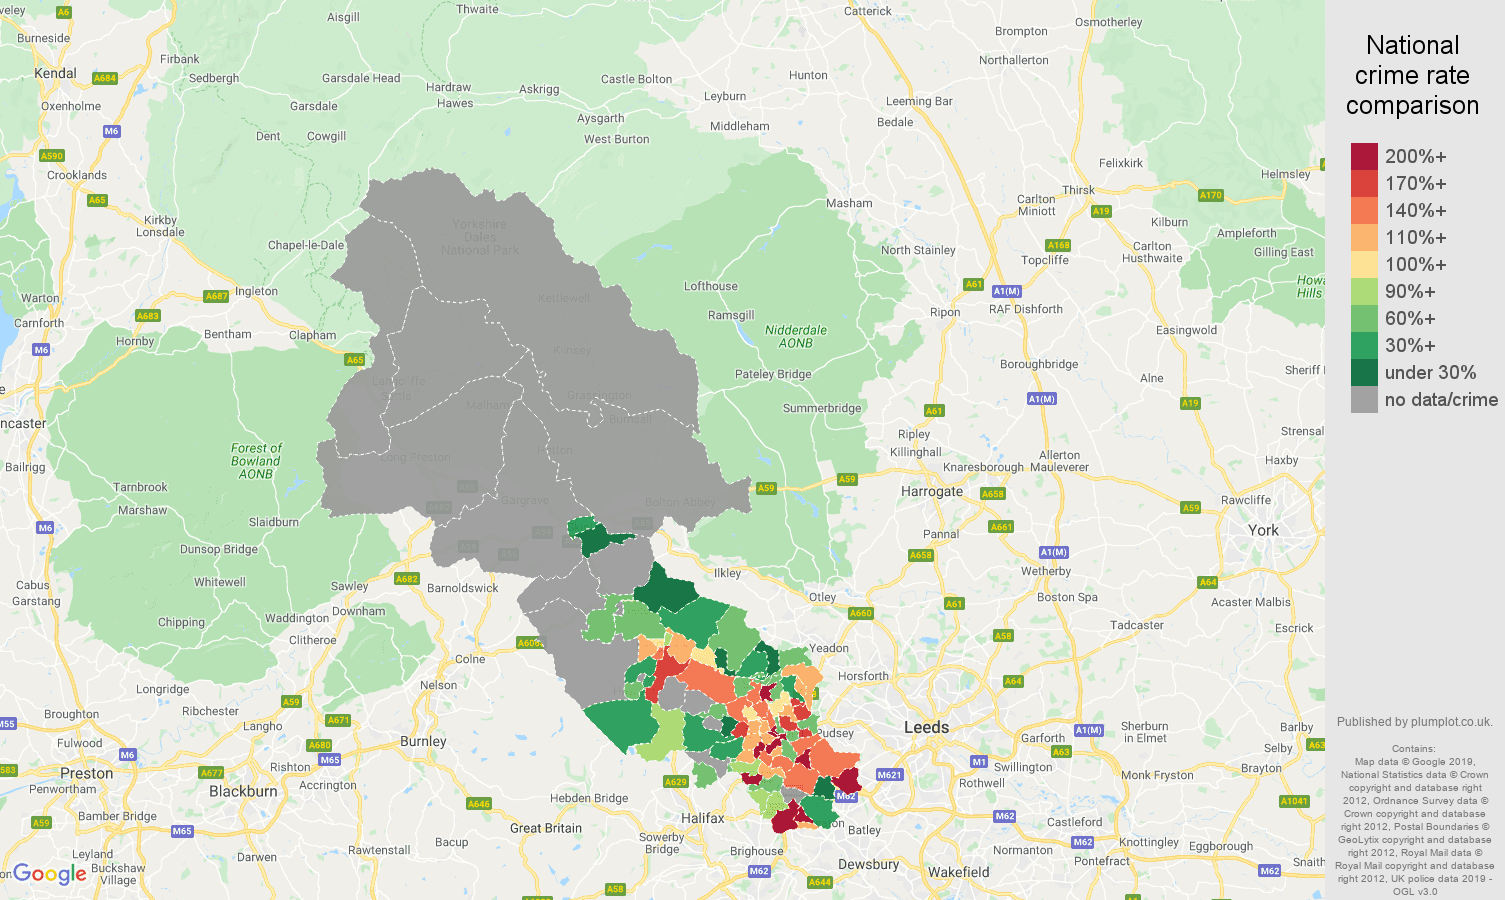 Bradford possession of weapons crime rate comparison map